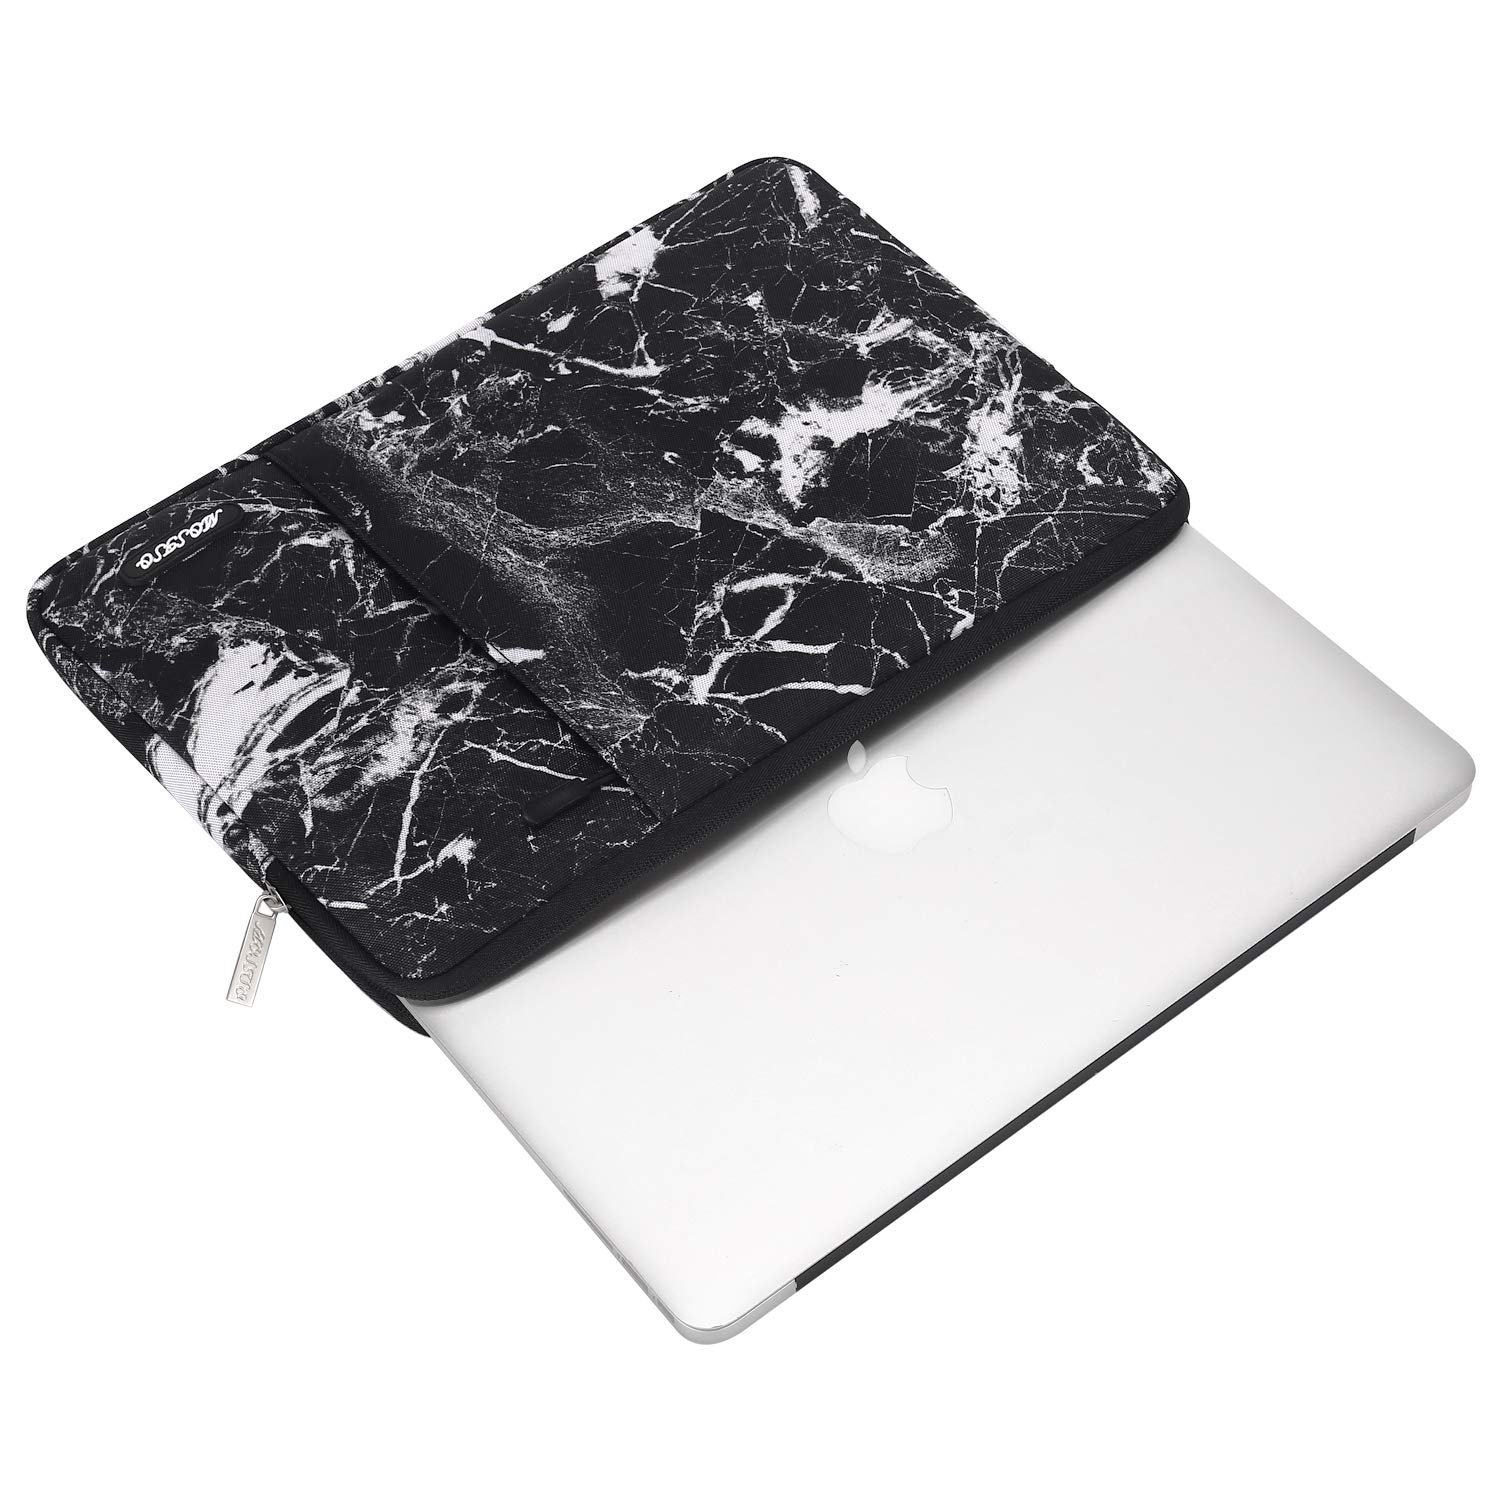 MOSISO Laptop Sleeve Bag Compatible 13-13.3 Inch MacBook Pro, MacBook Air, Notebook Computer, Vertical Style Water Repellent Polyester Protective Case Cover with Pocket, Black Marble by MOSISO (Image #4)